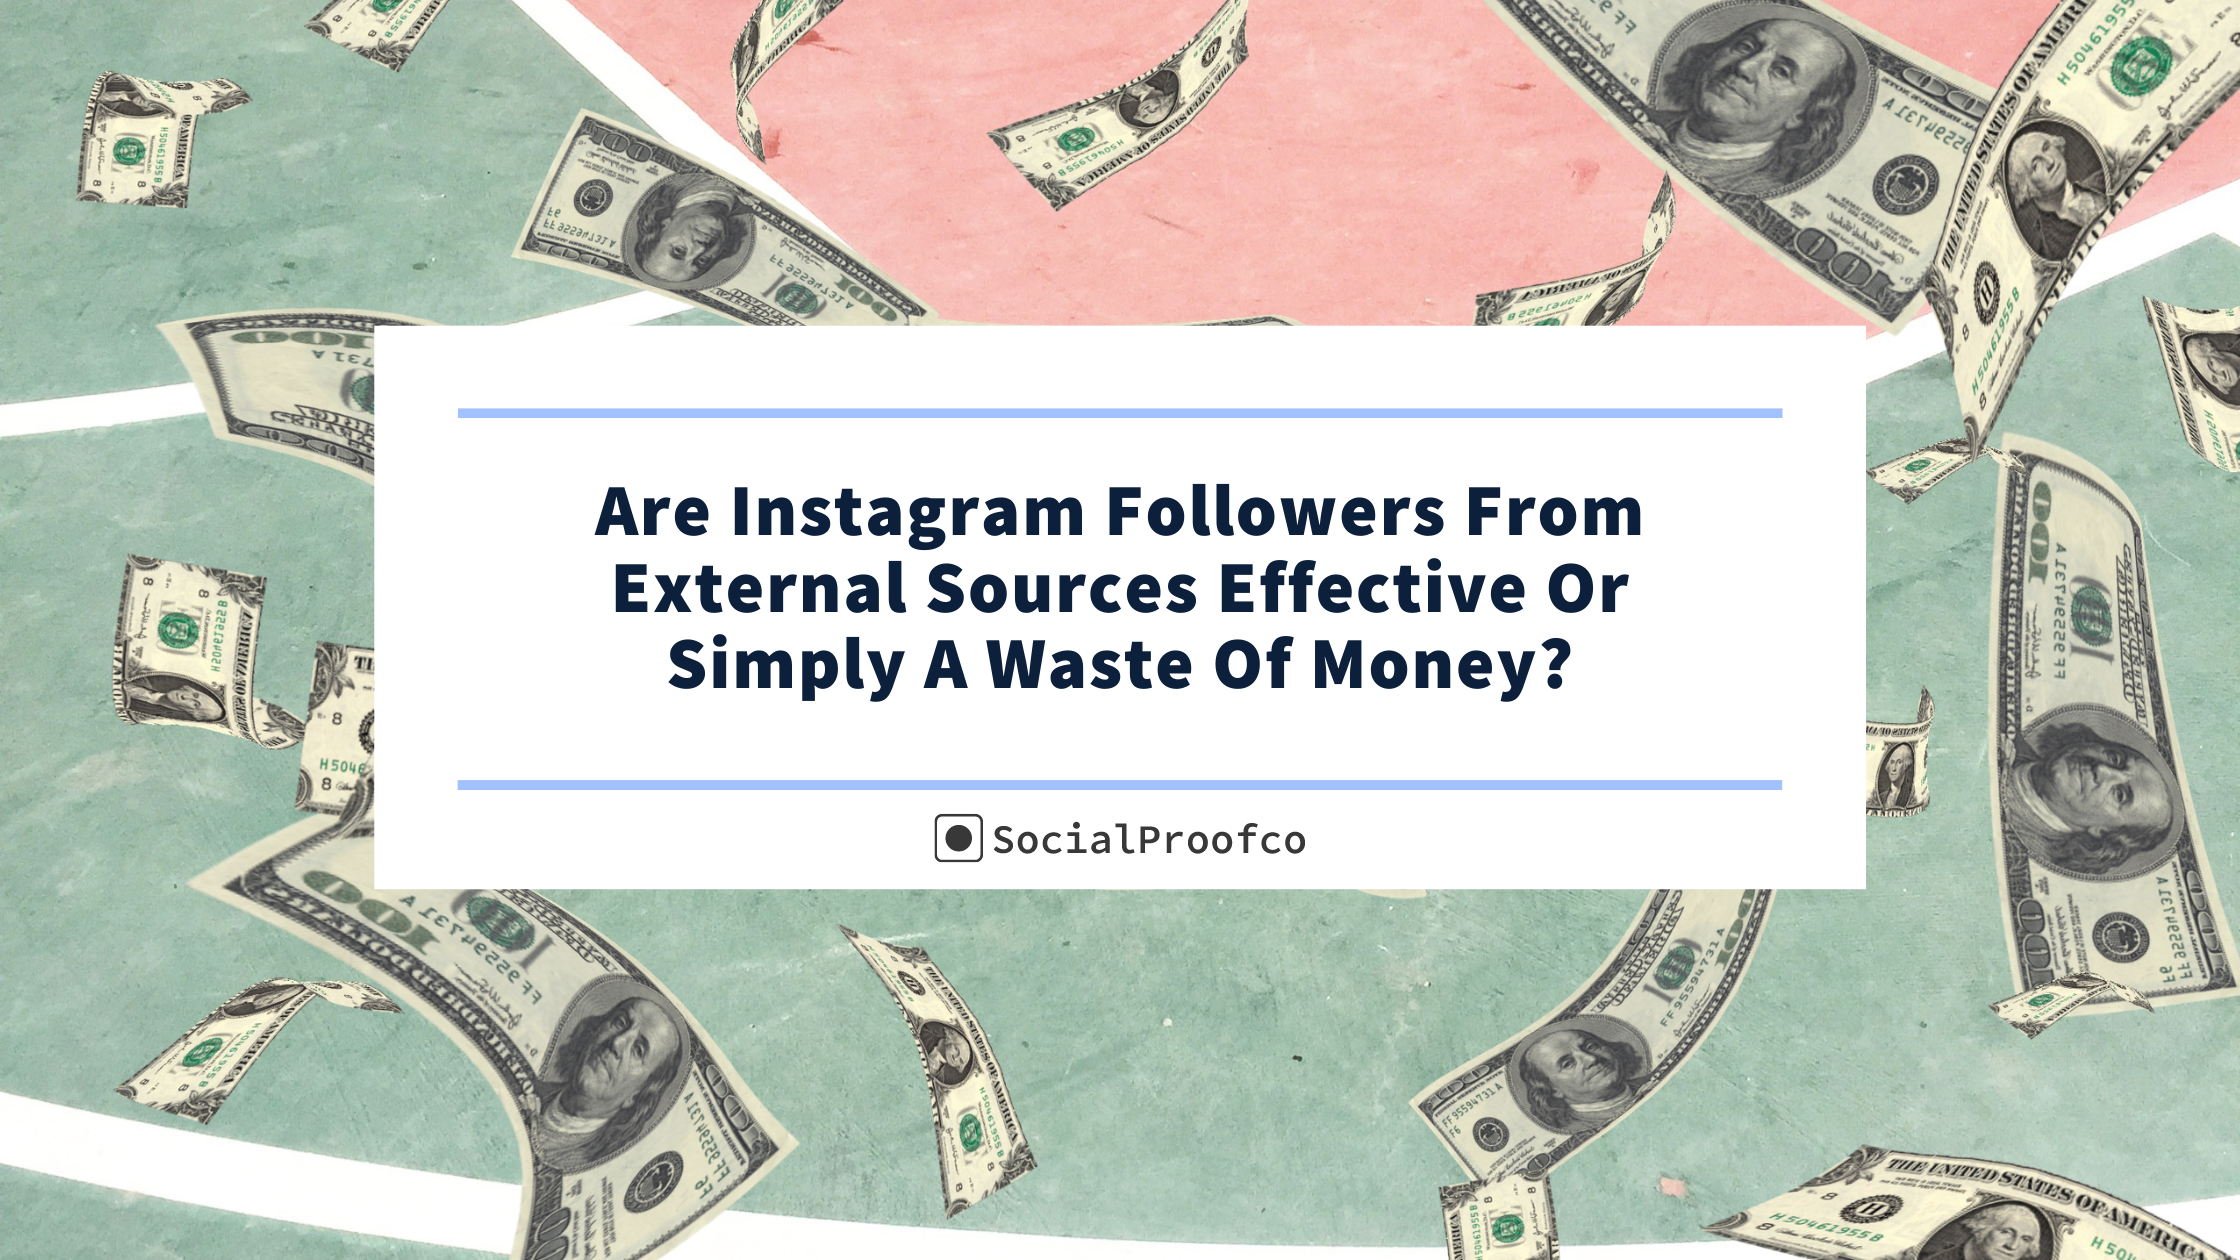 Are Instagram Followers From External Sources Effective?